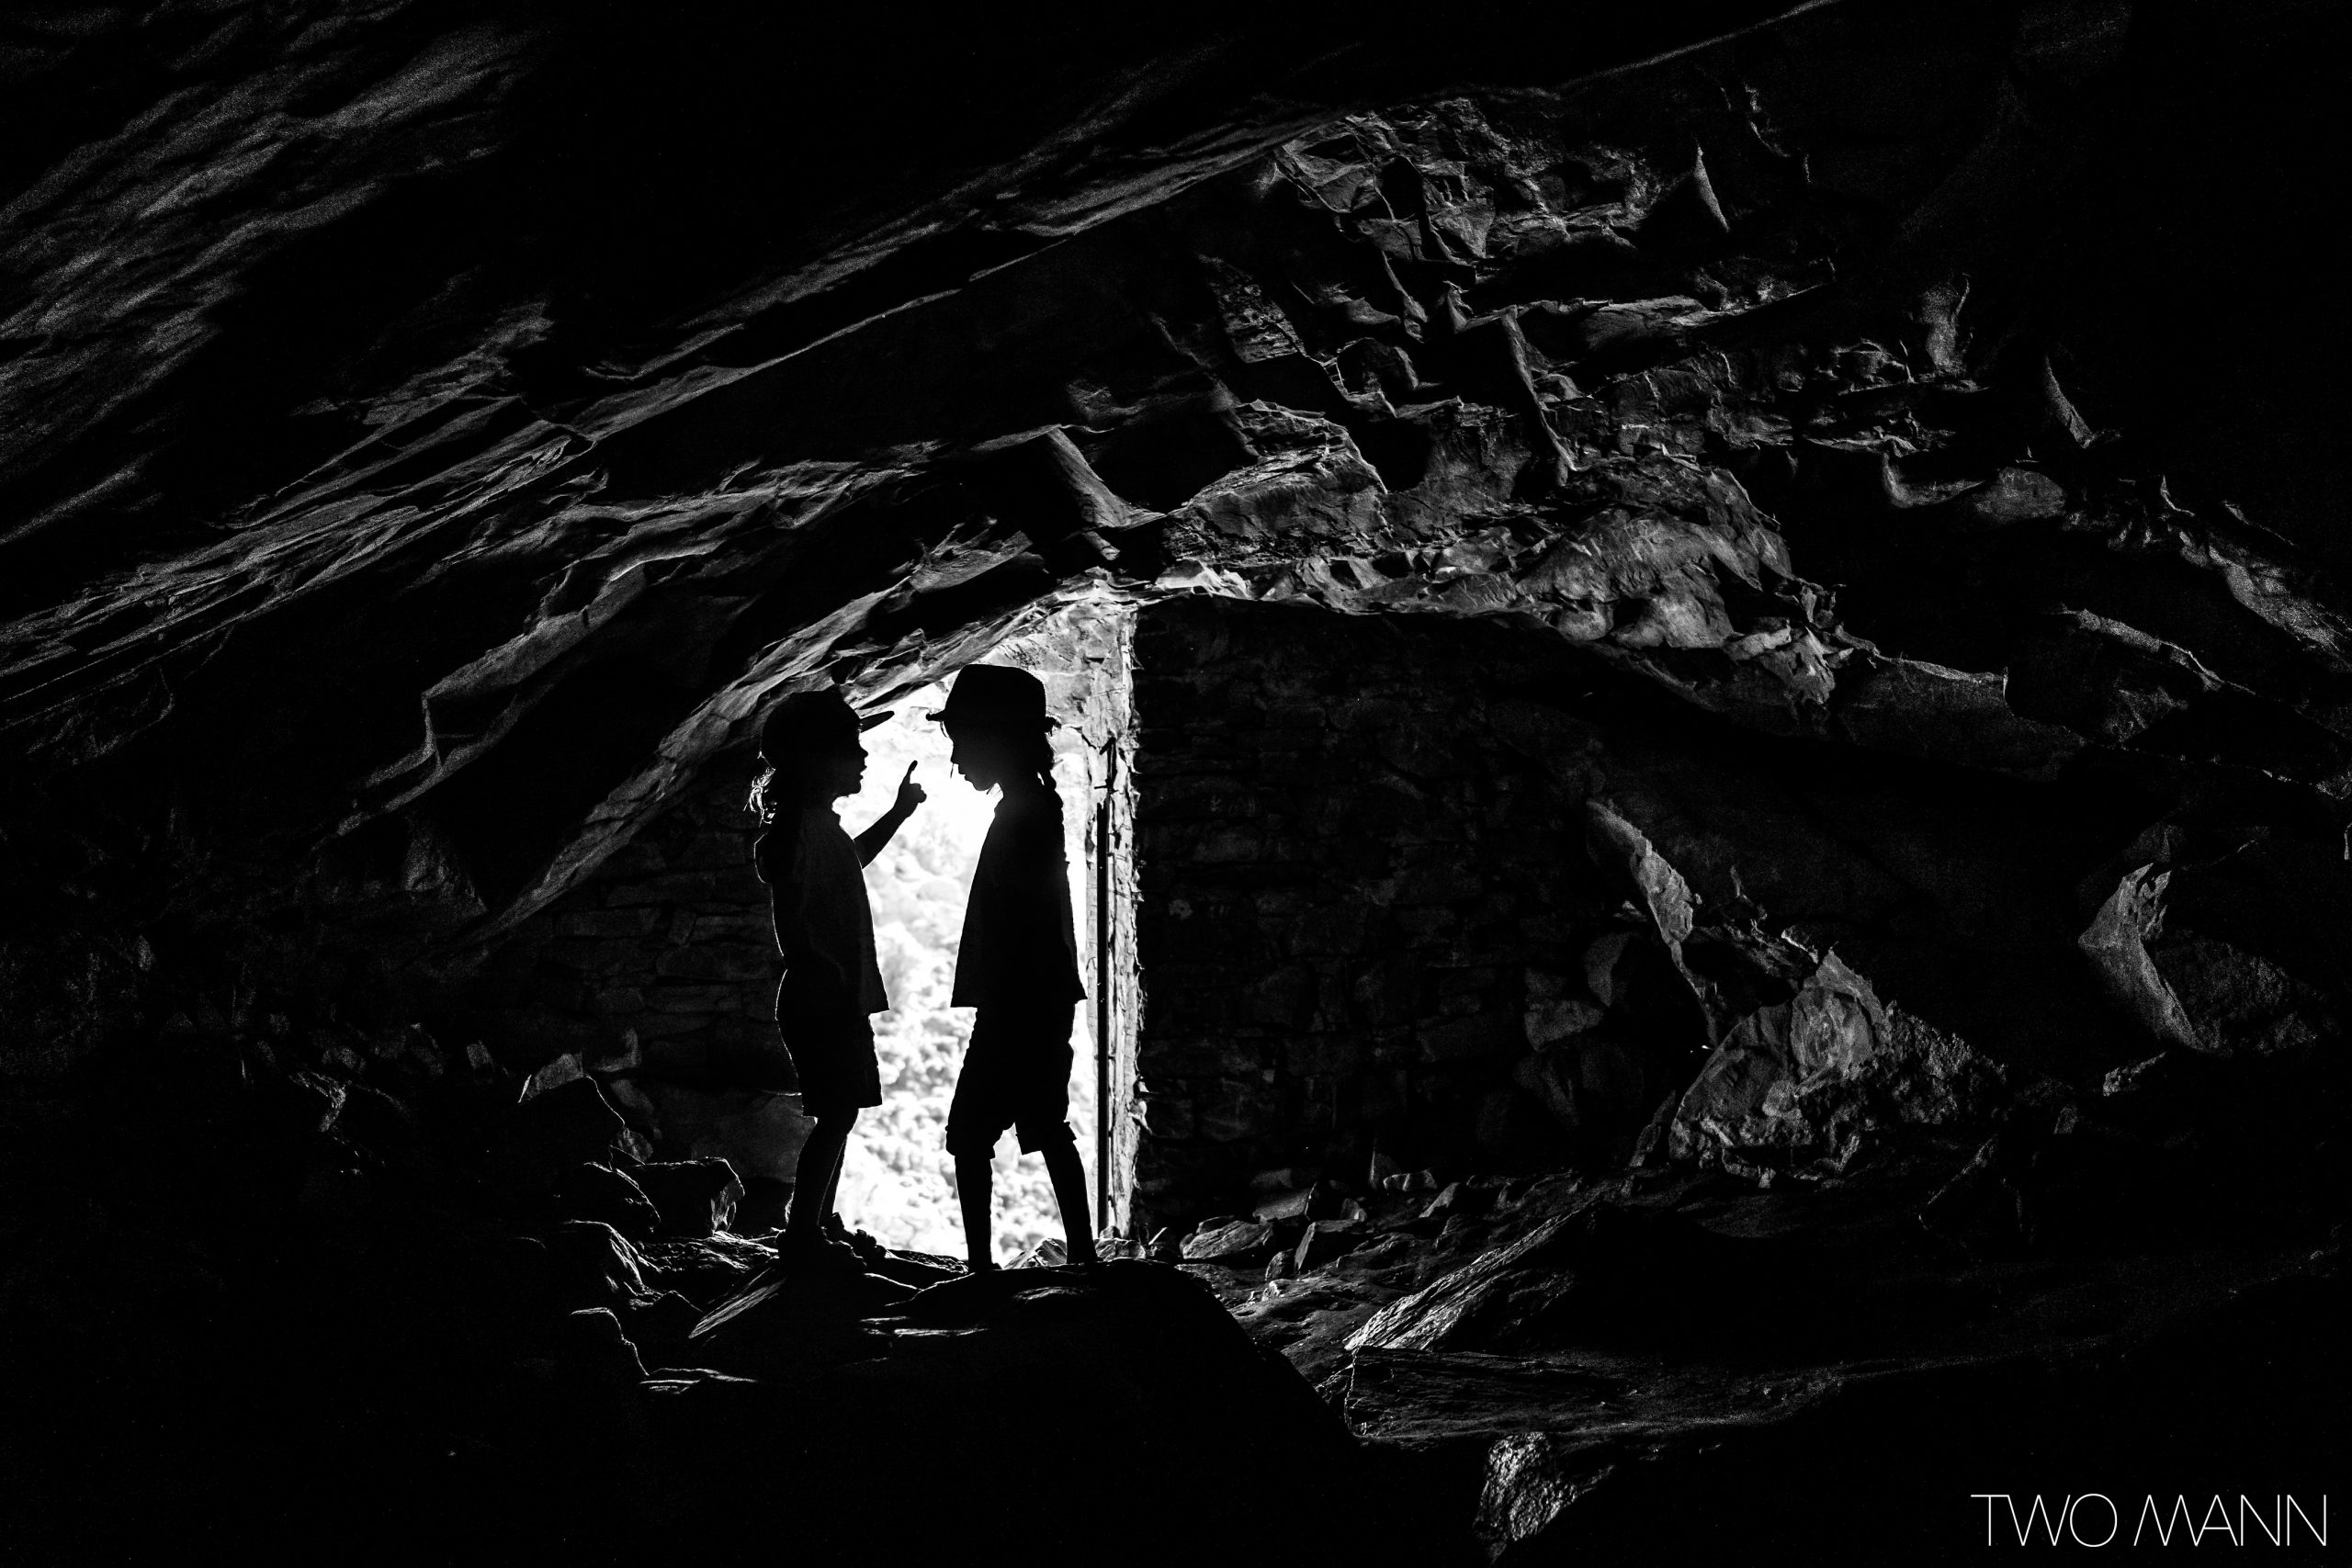 Two kids in dark rocky tunnel stand face to face